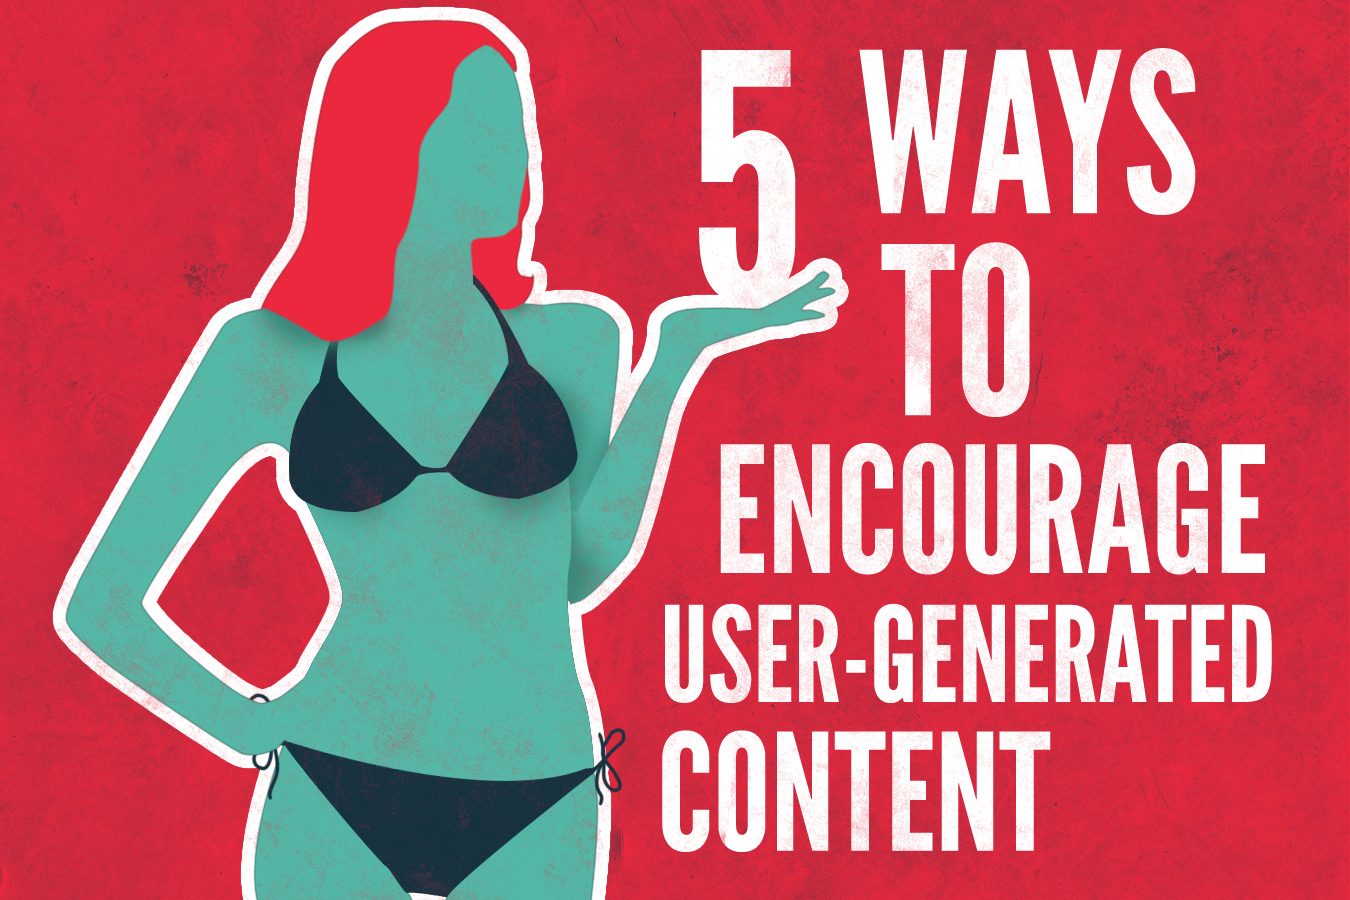 5 Ways to Encourage User-Generated Content